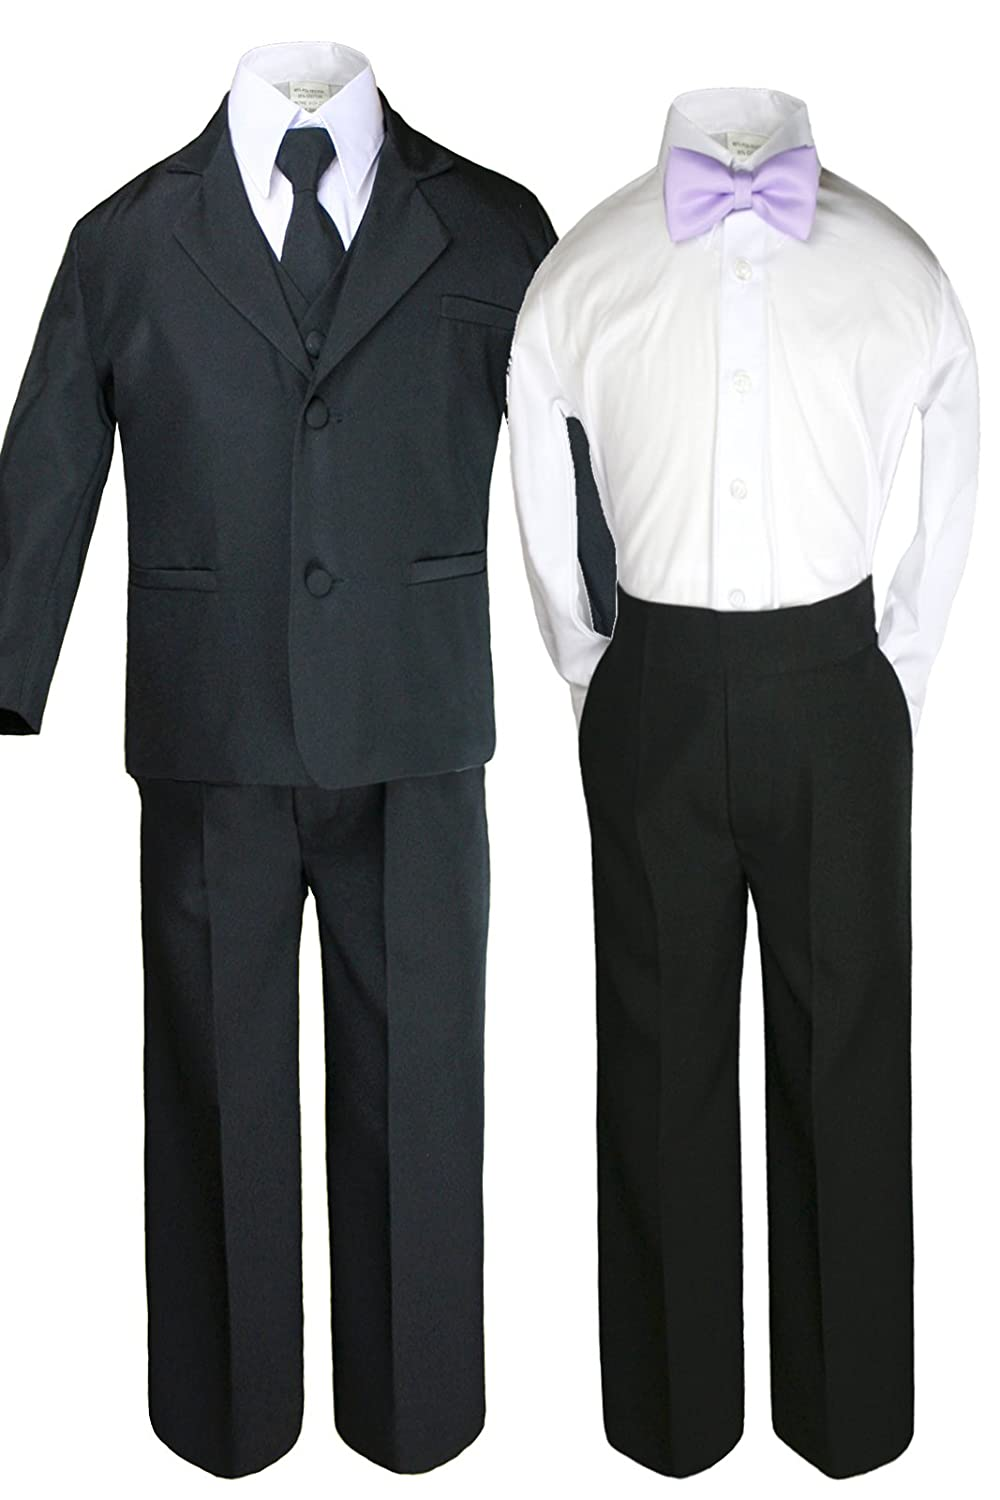 Unotux 6pc Baby Toddler Boy Teen Formal Black Suit Set or 1pc Satin Bow Tie Only Sm-20